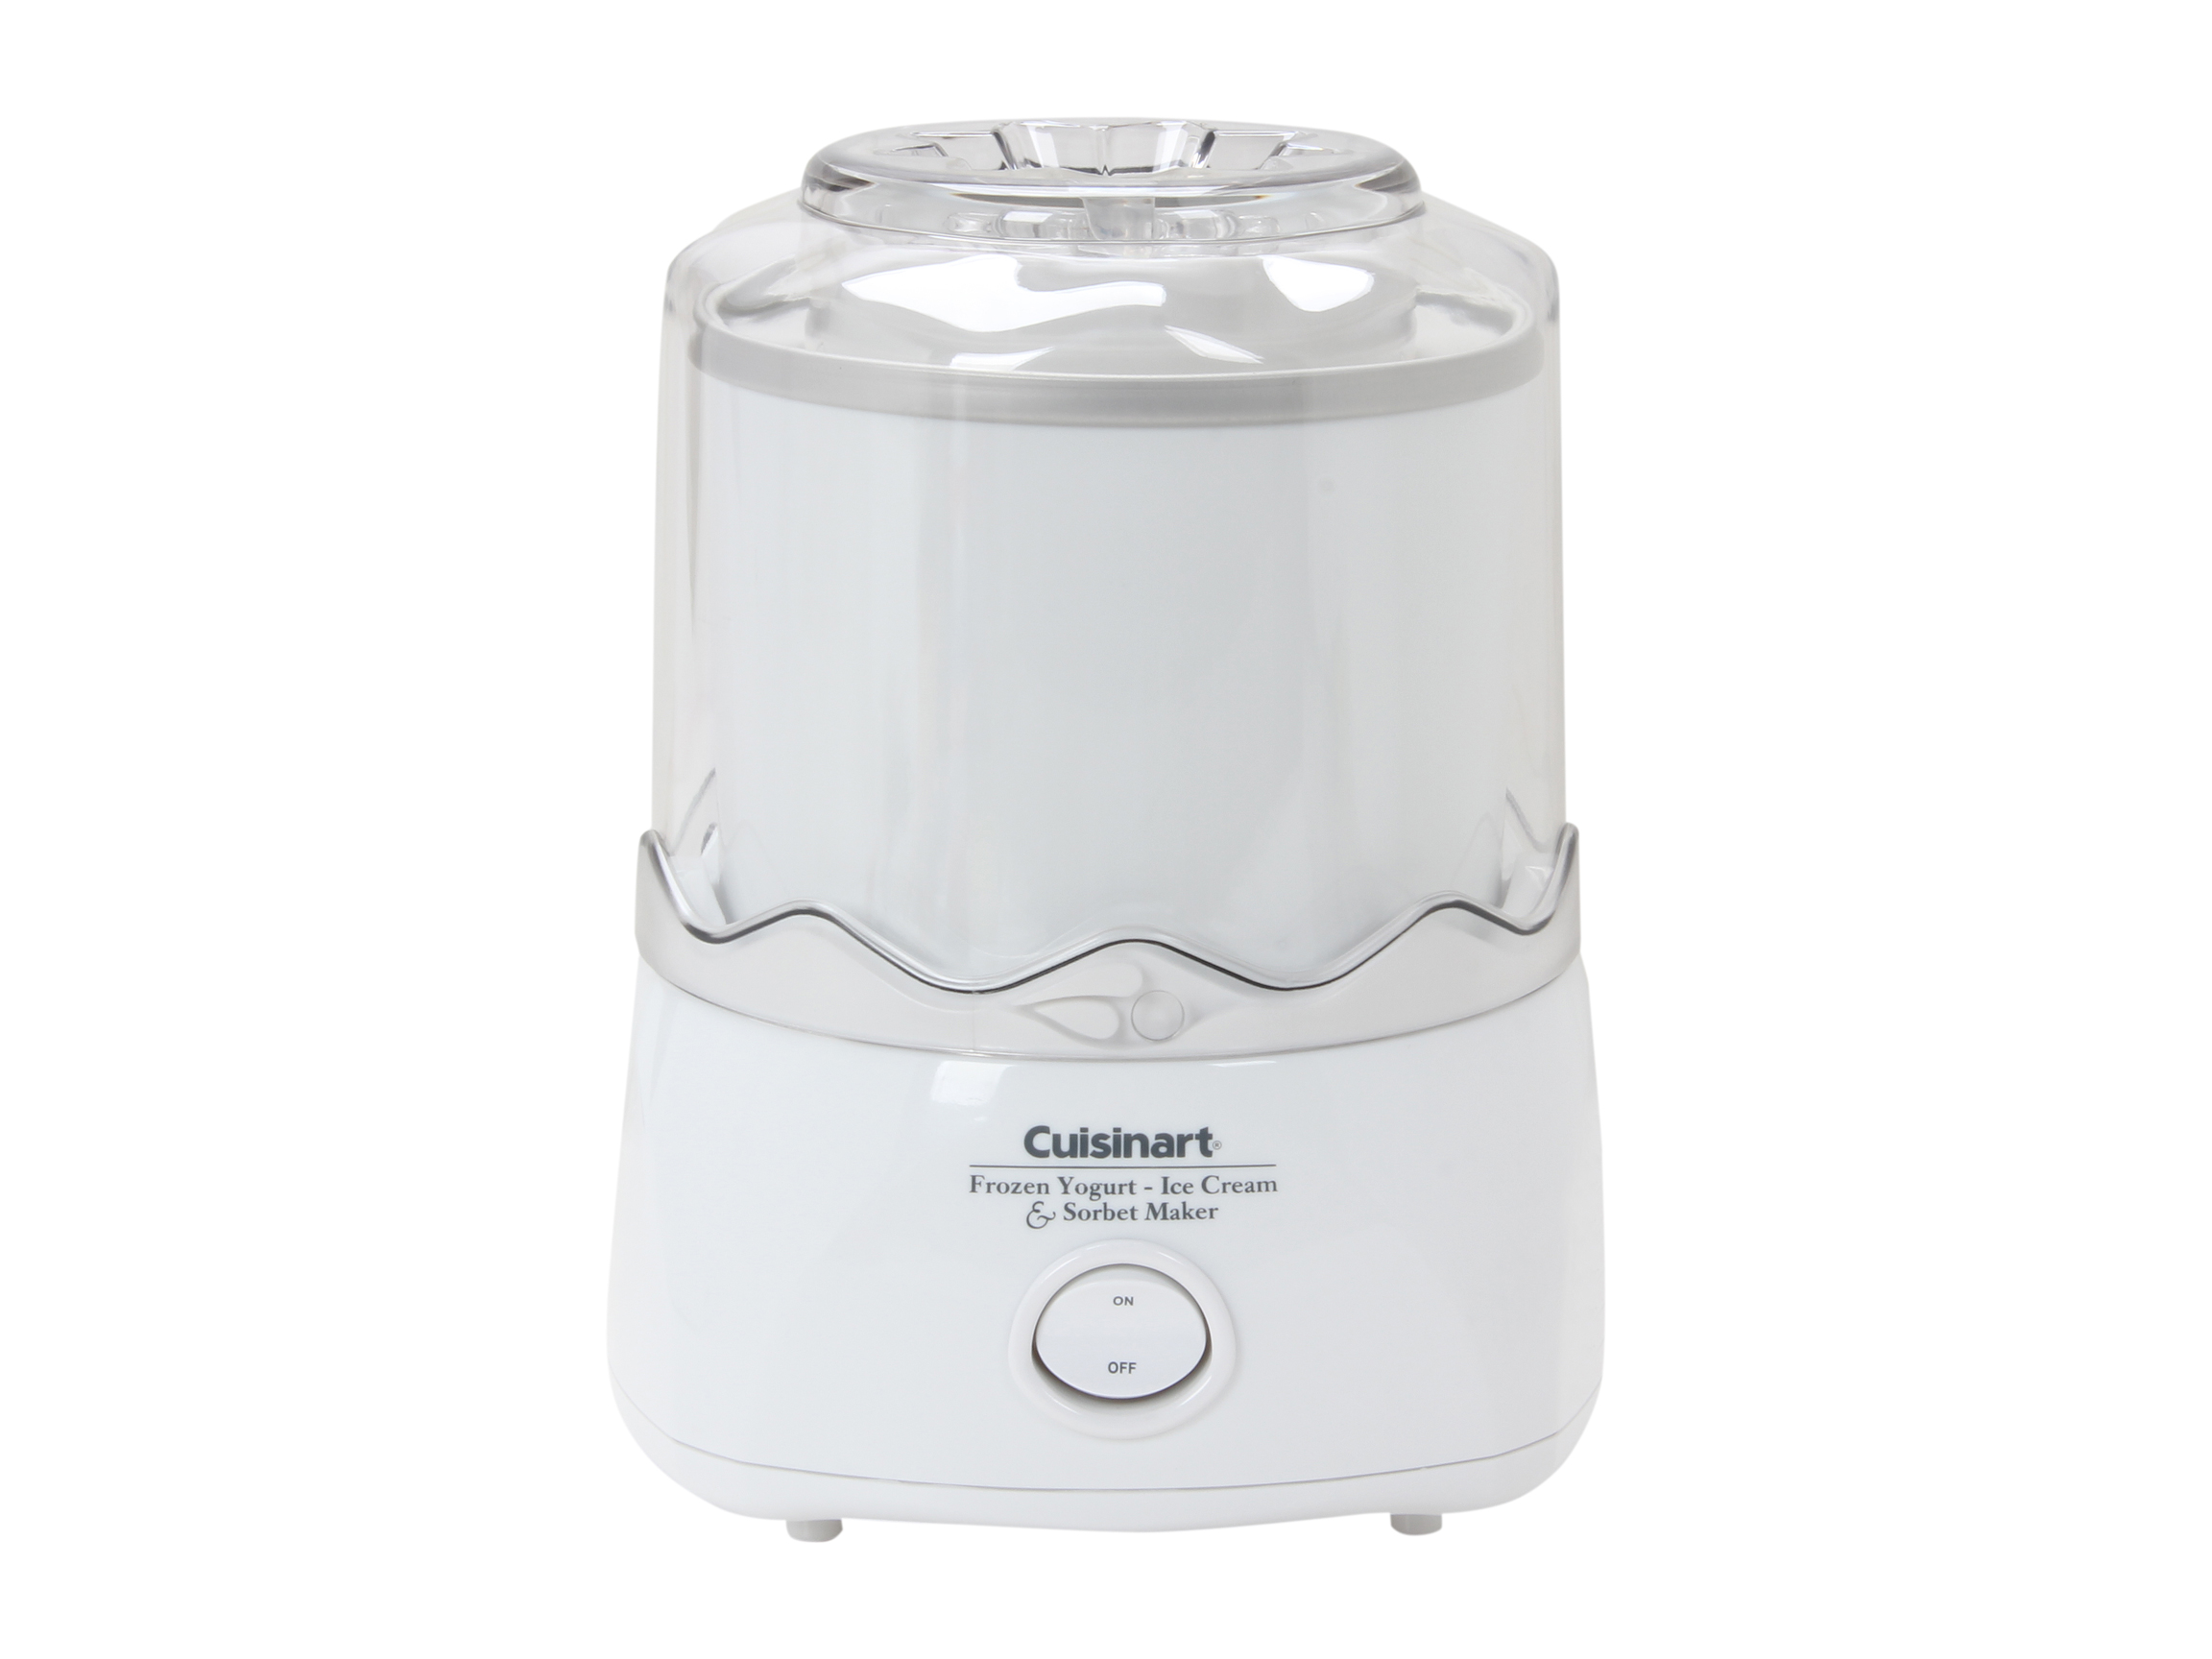 Refurbished: Cuisinart ICE-20 Automatic Frozen Yogurt-Ice Cream & Sorbet Maker